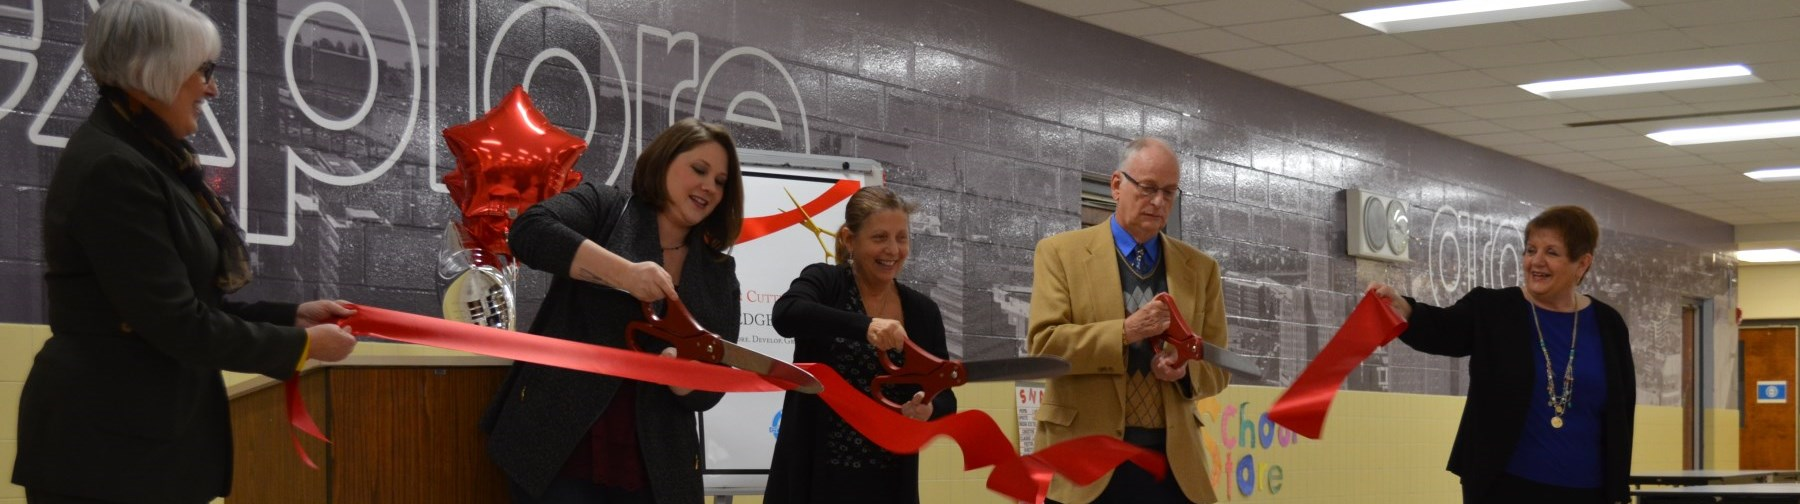 EDGE Academy Ribbon Cutting